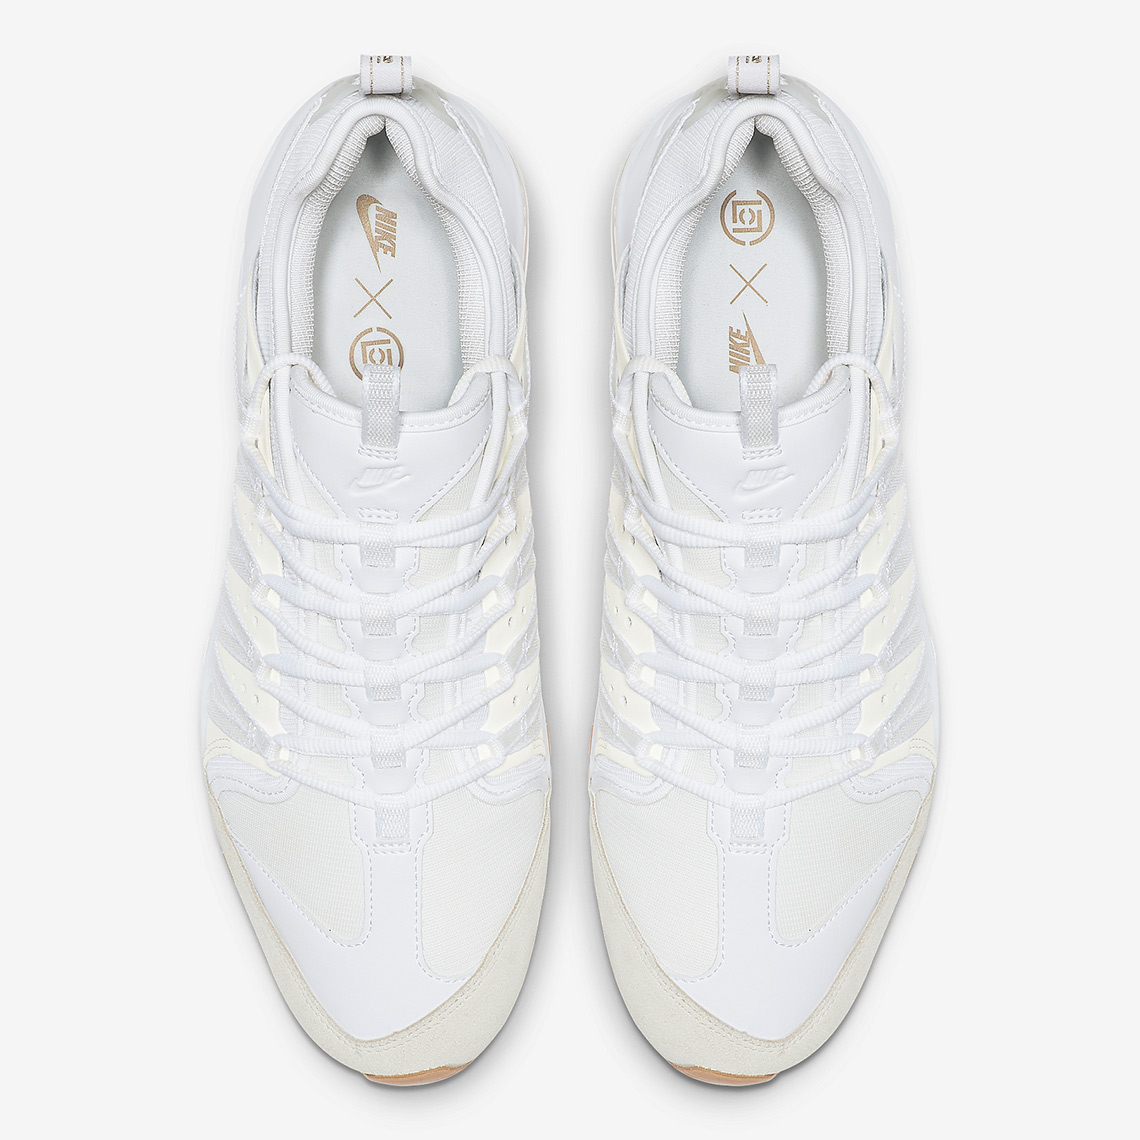 cheap for discount 5ded9 8af2b CLOT Nike Air Max 97 Haven - Full Release Info   SneakerNews.com